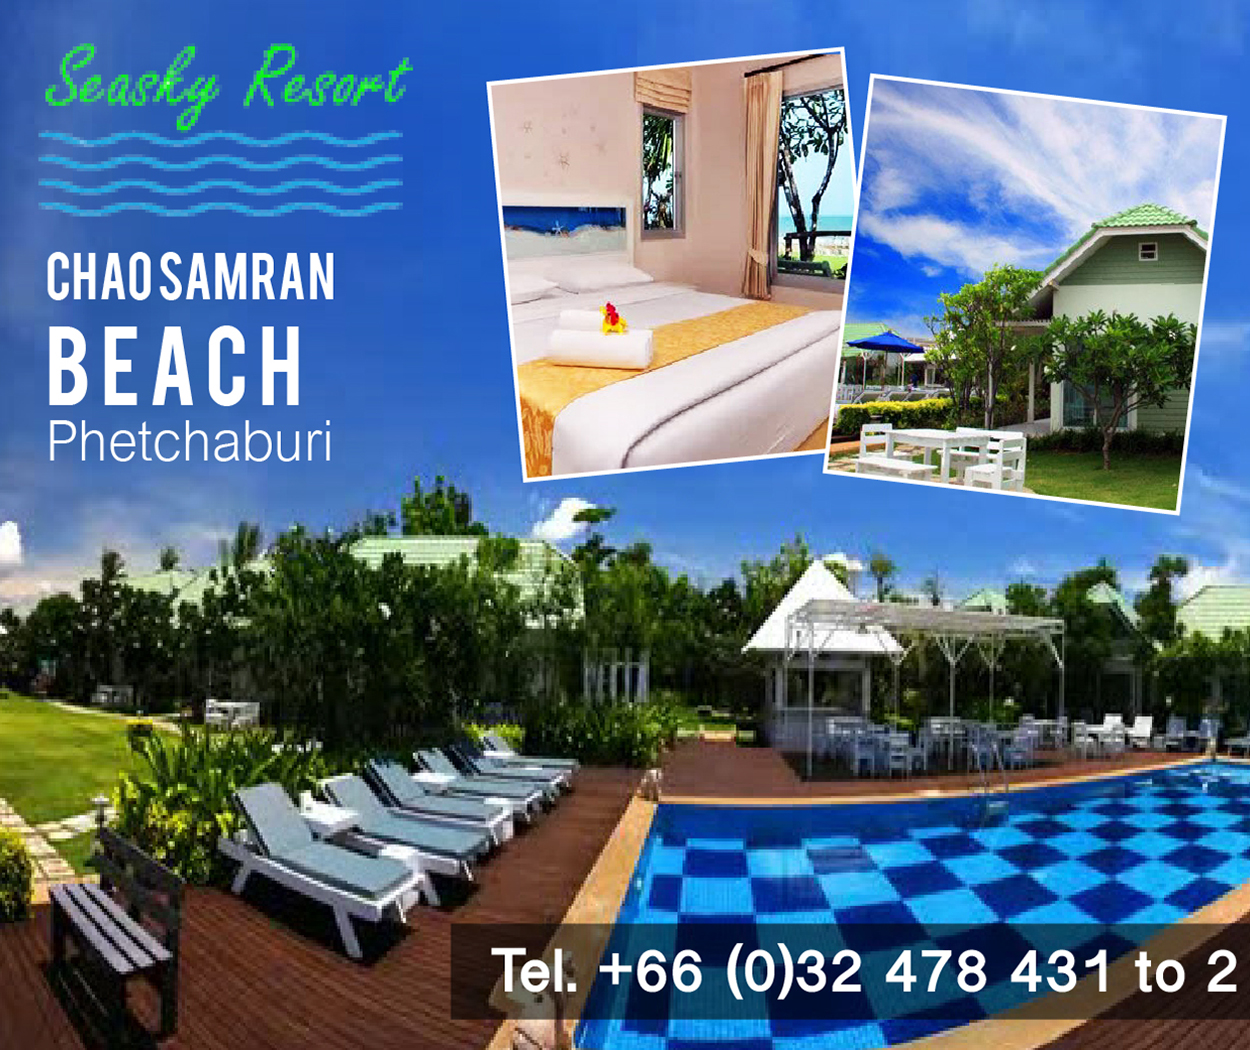 Seasky Resort